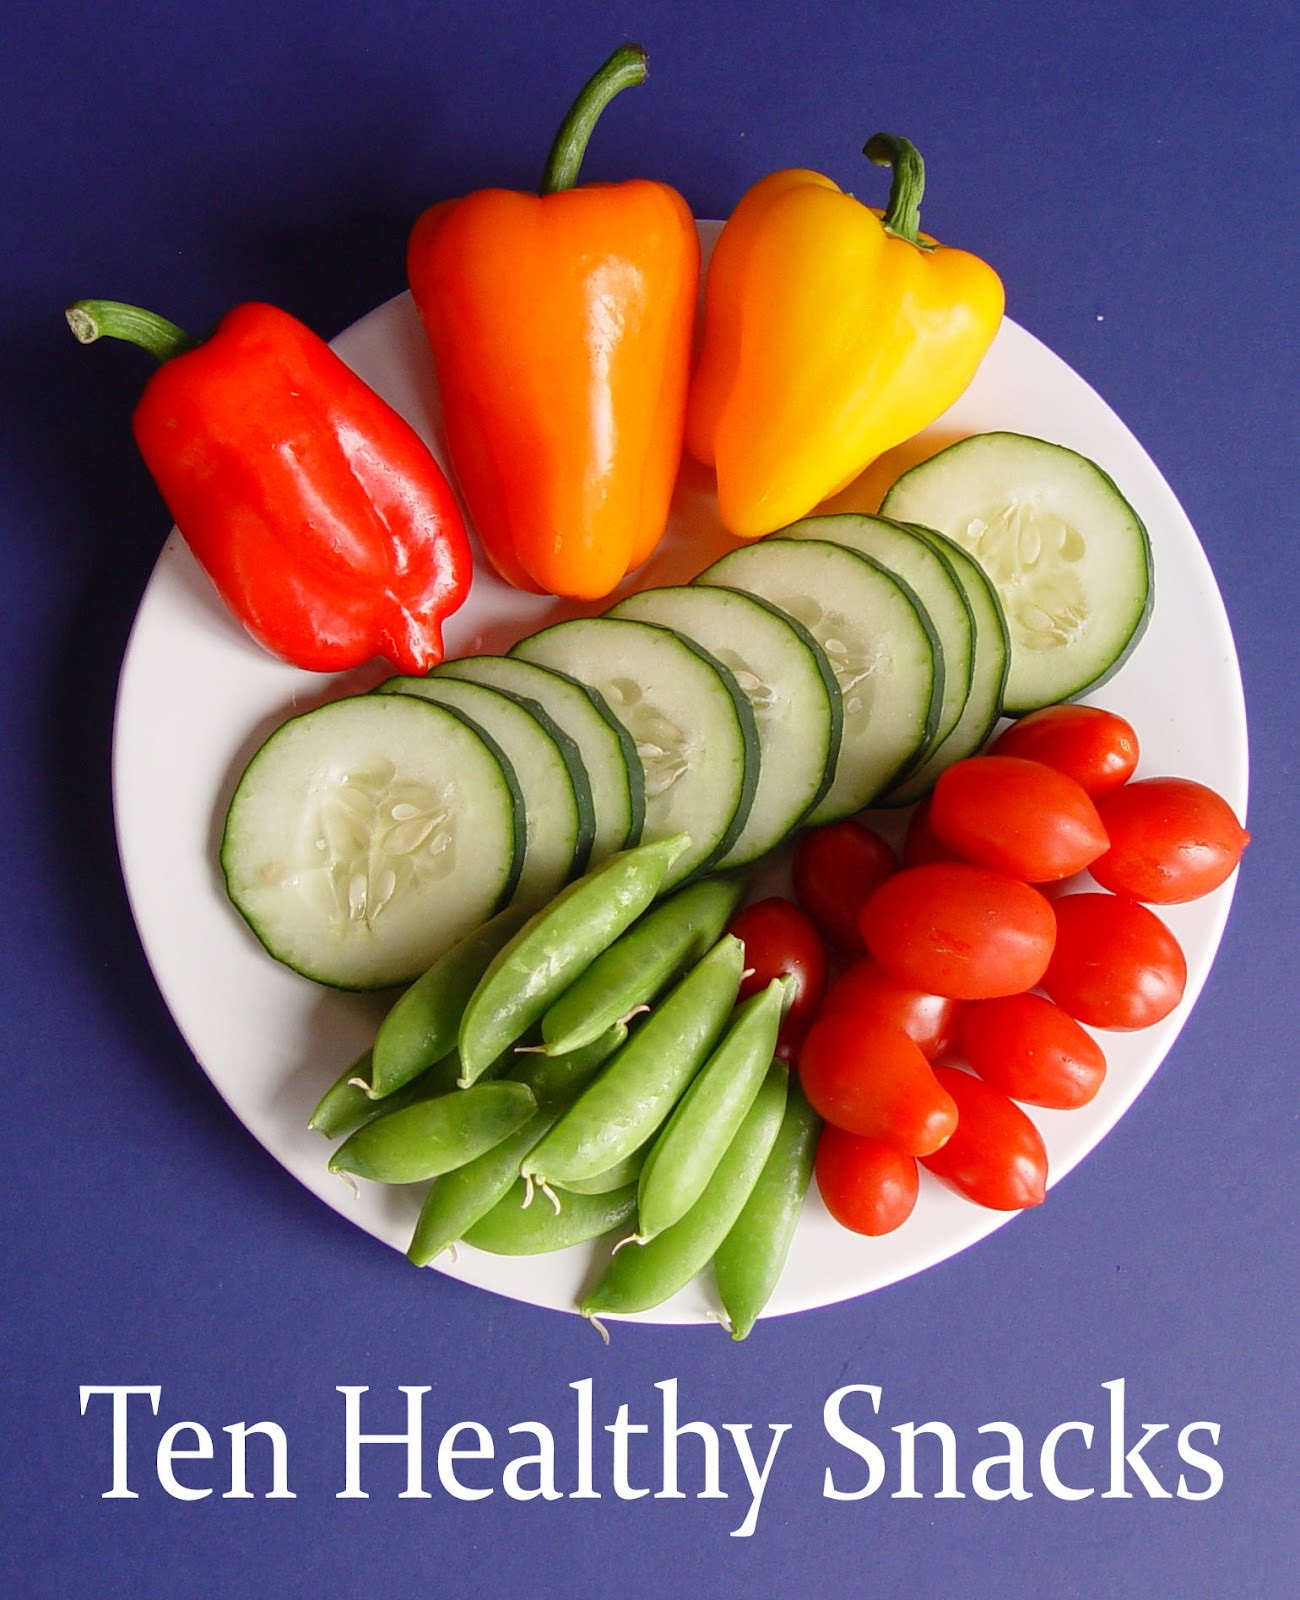 Healthy Food Snacks  Ten Healthy Snacks with Printable Page